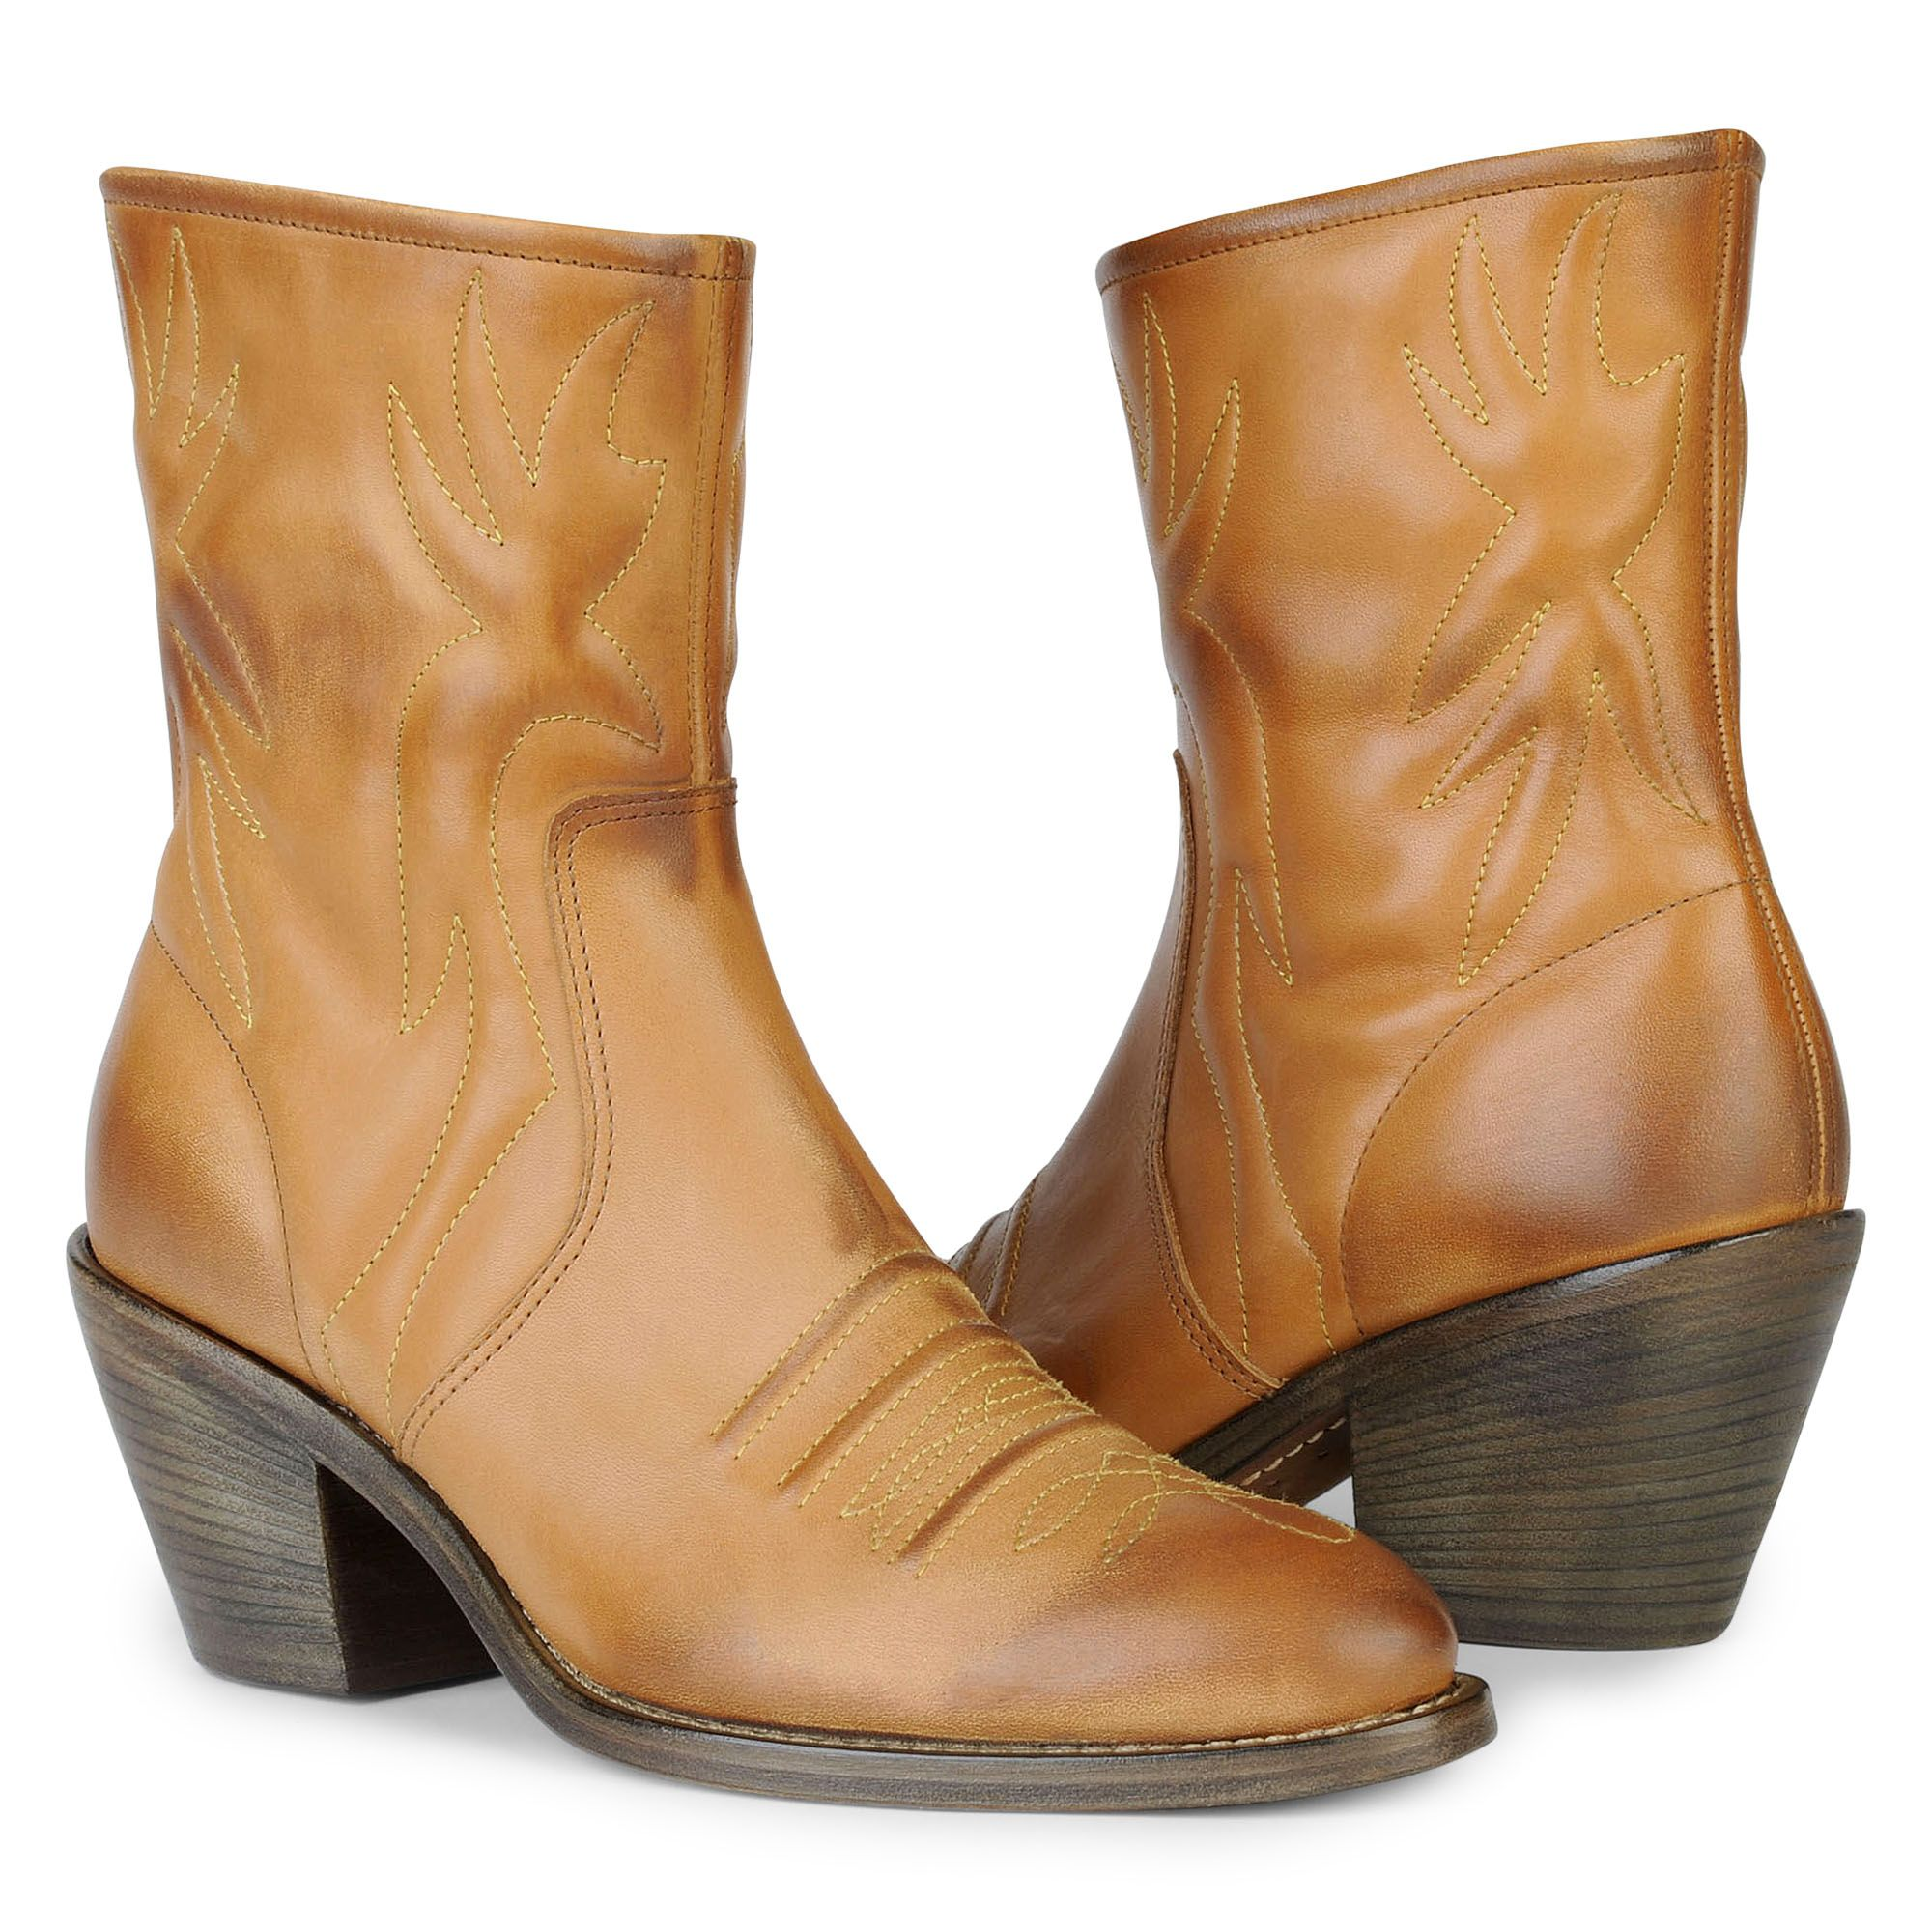 Chloé Short Leather Cowboy Boots in Tan (Brown)